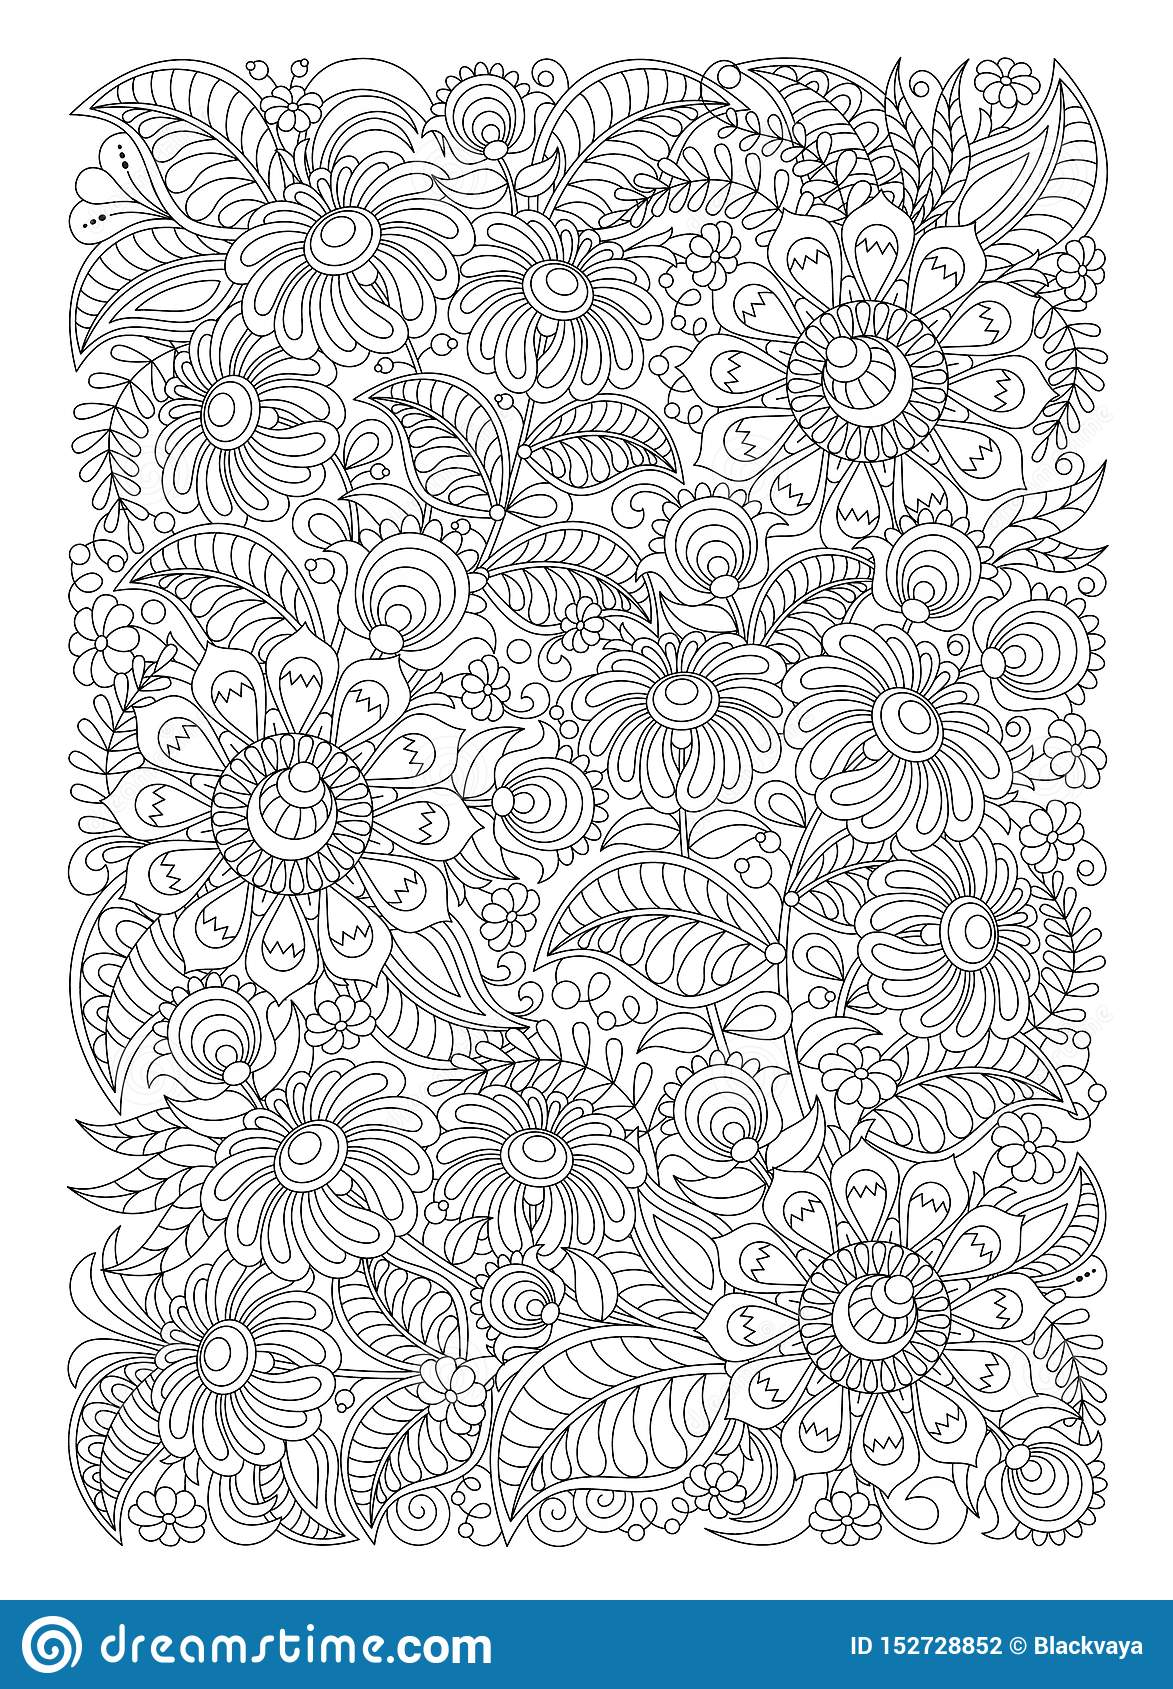 Abstract Zentangle Coloring Page Royalty Free Cliparts, Vectors ... | 1689x1173